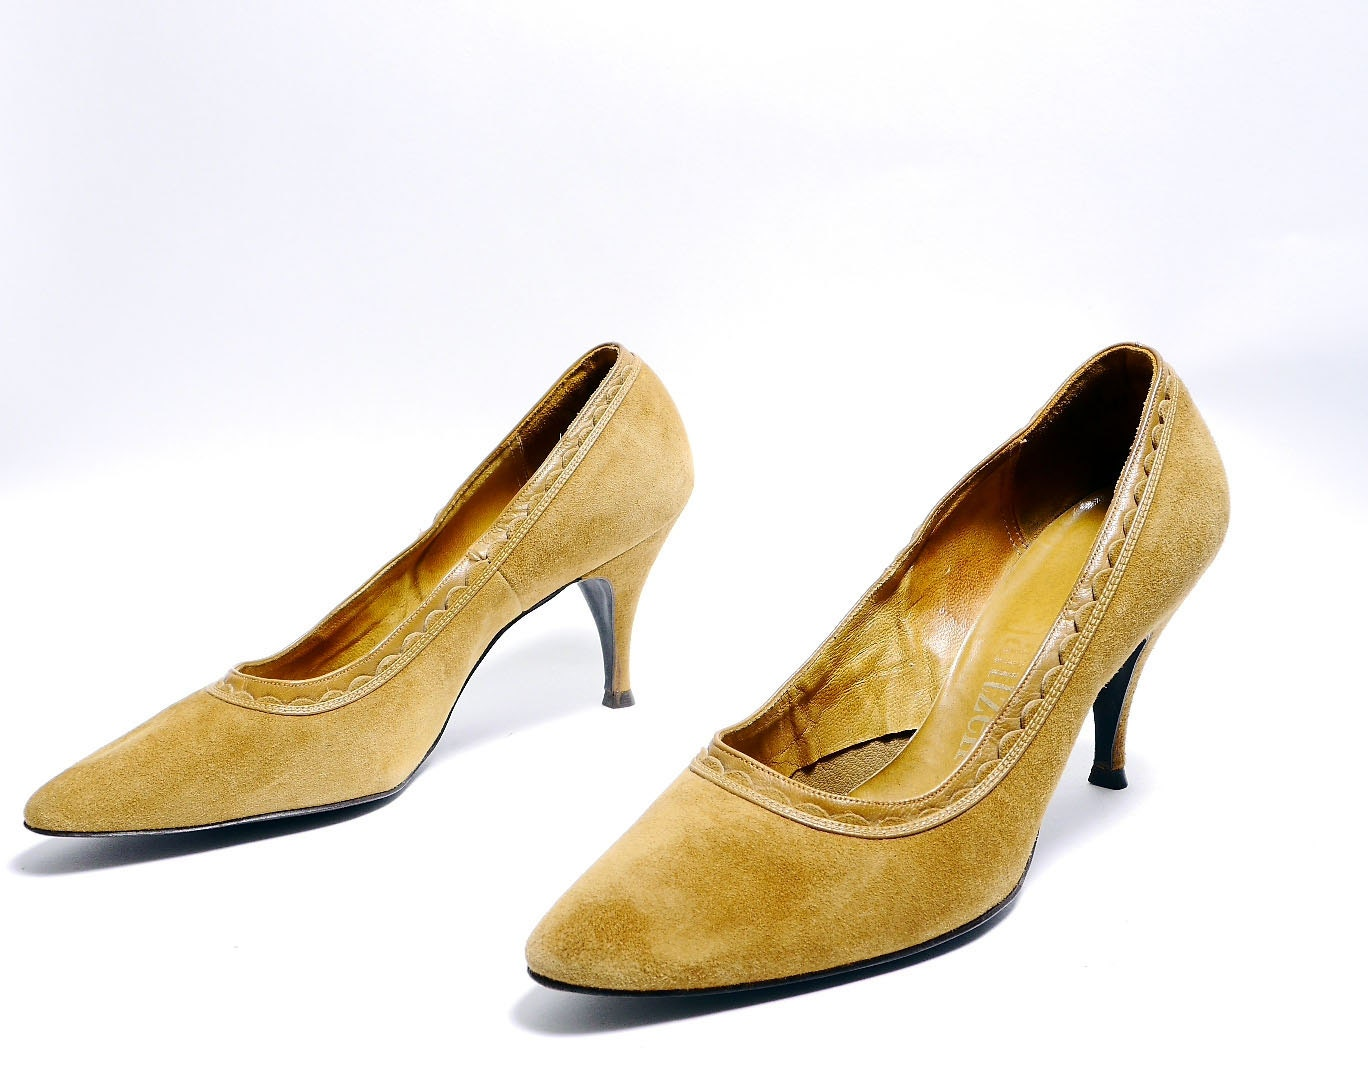 e59d3139d30 Vintage suede mustard yellow high heels pointed toe etsy jpg 1368x1080 Suede  mustard pumps